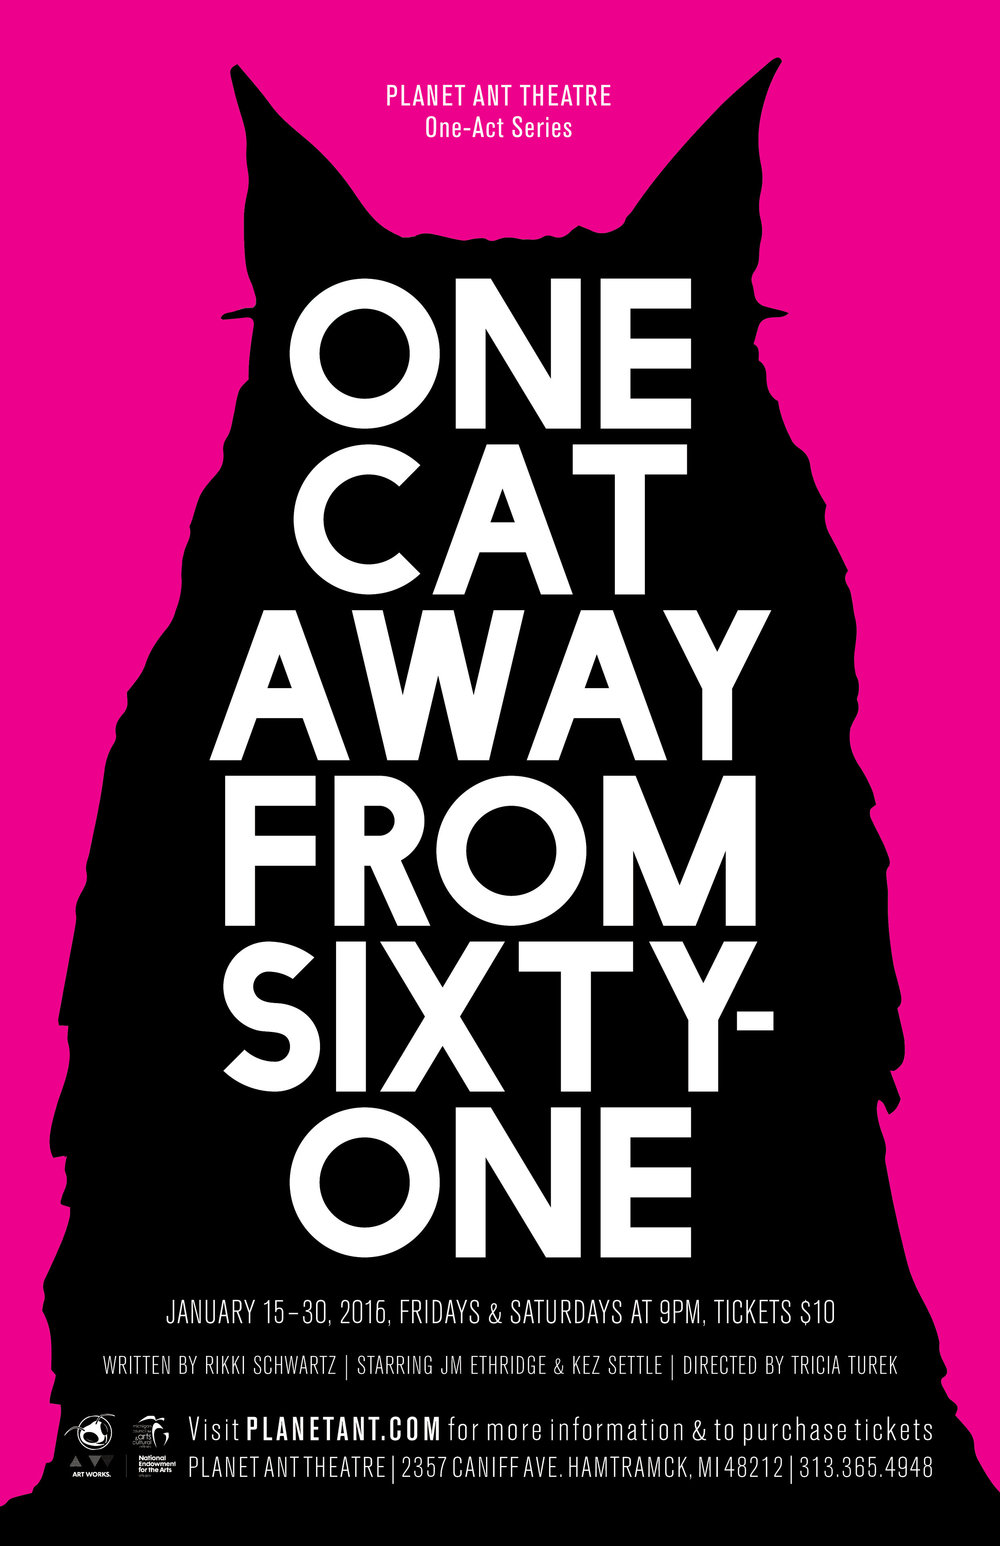 One Cat Away From Sixty-One